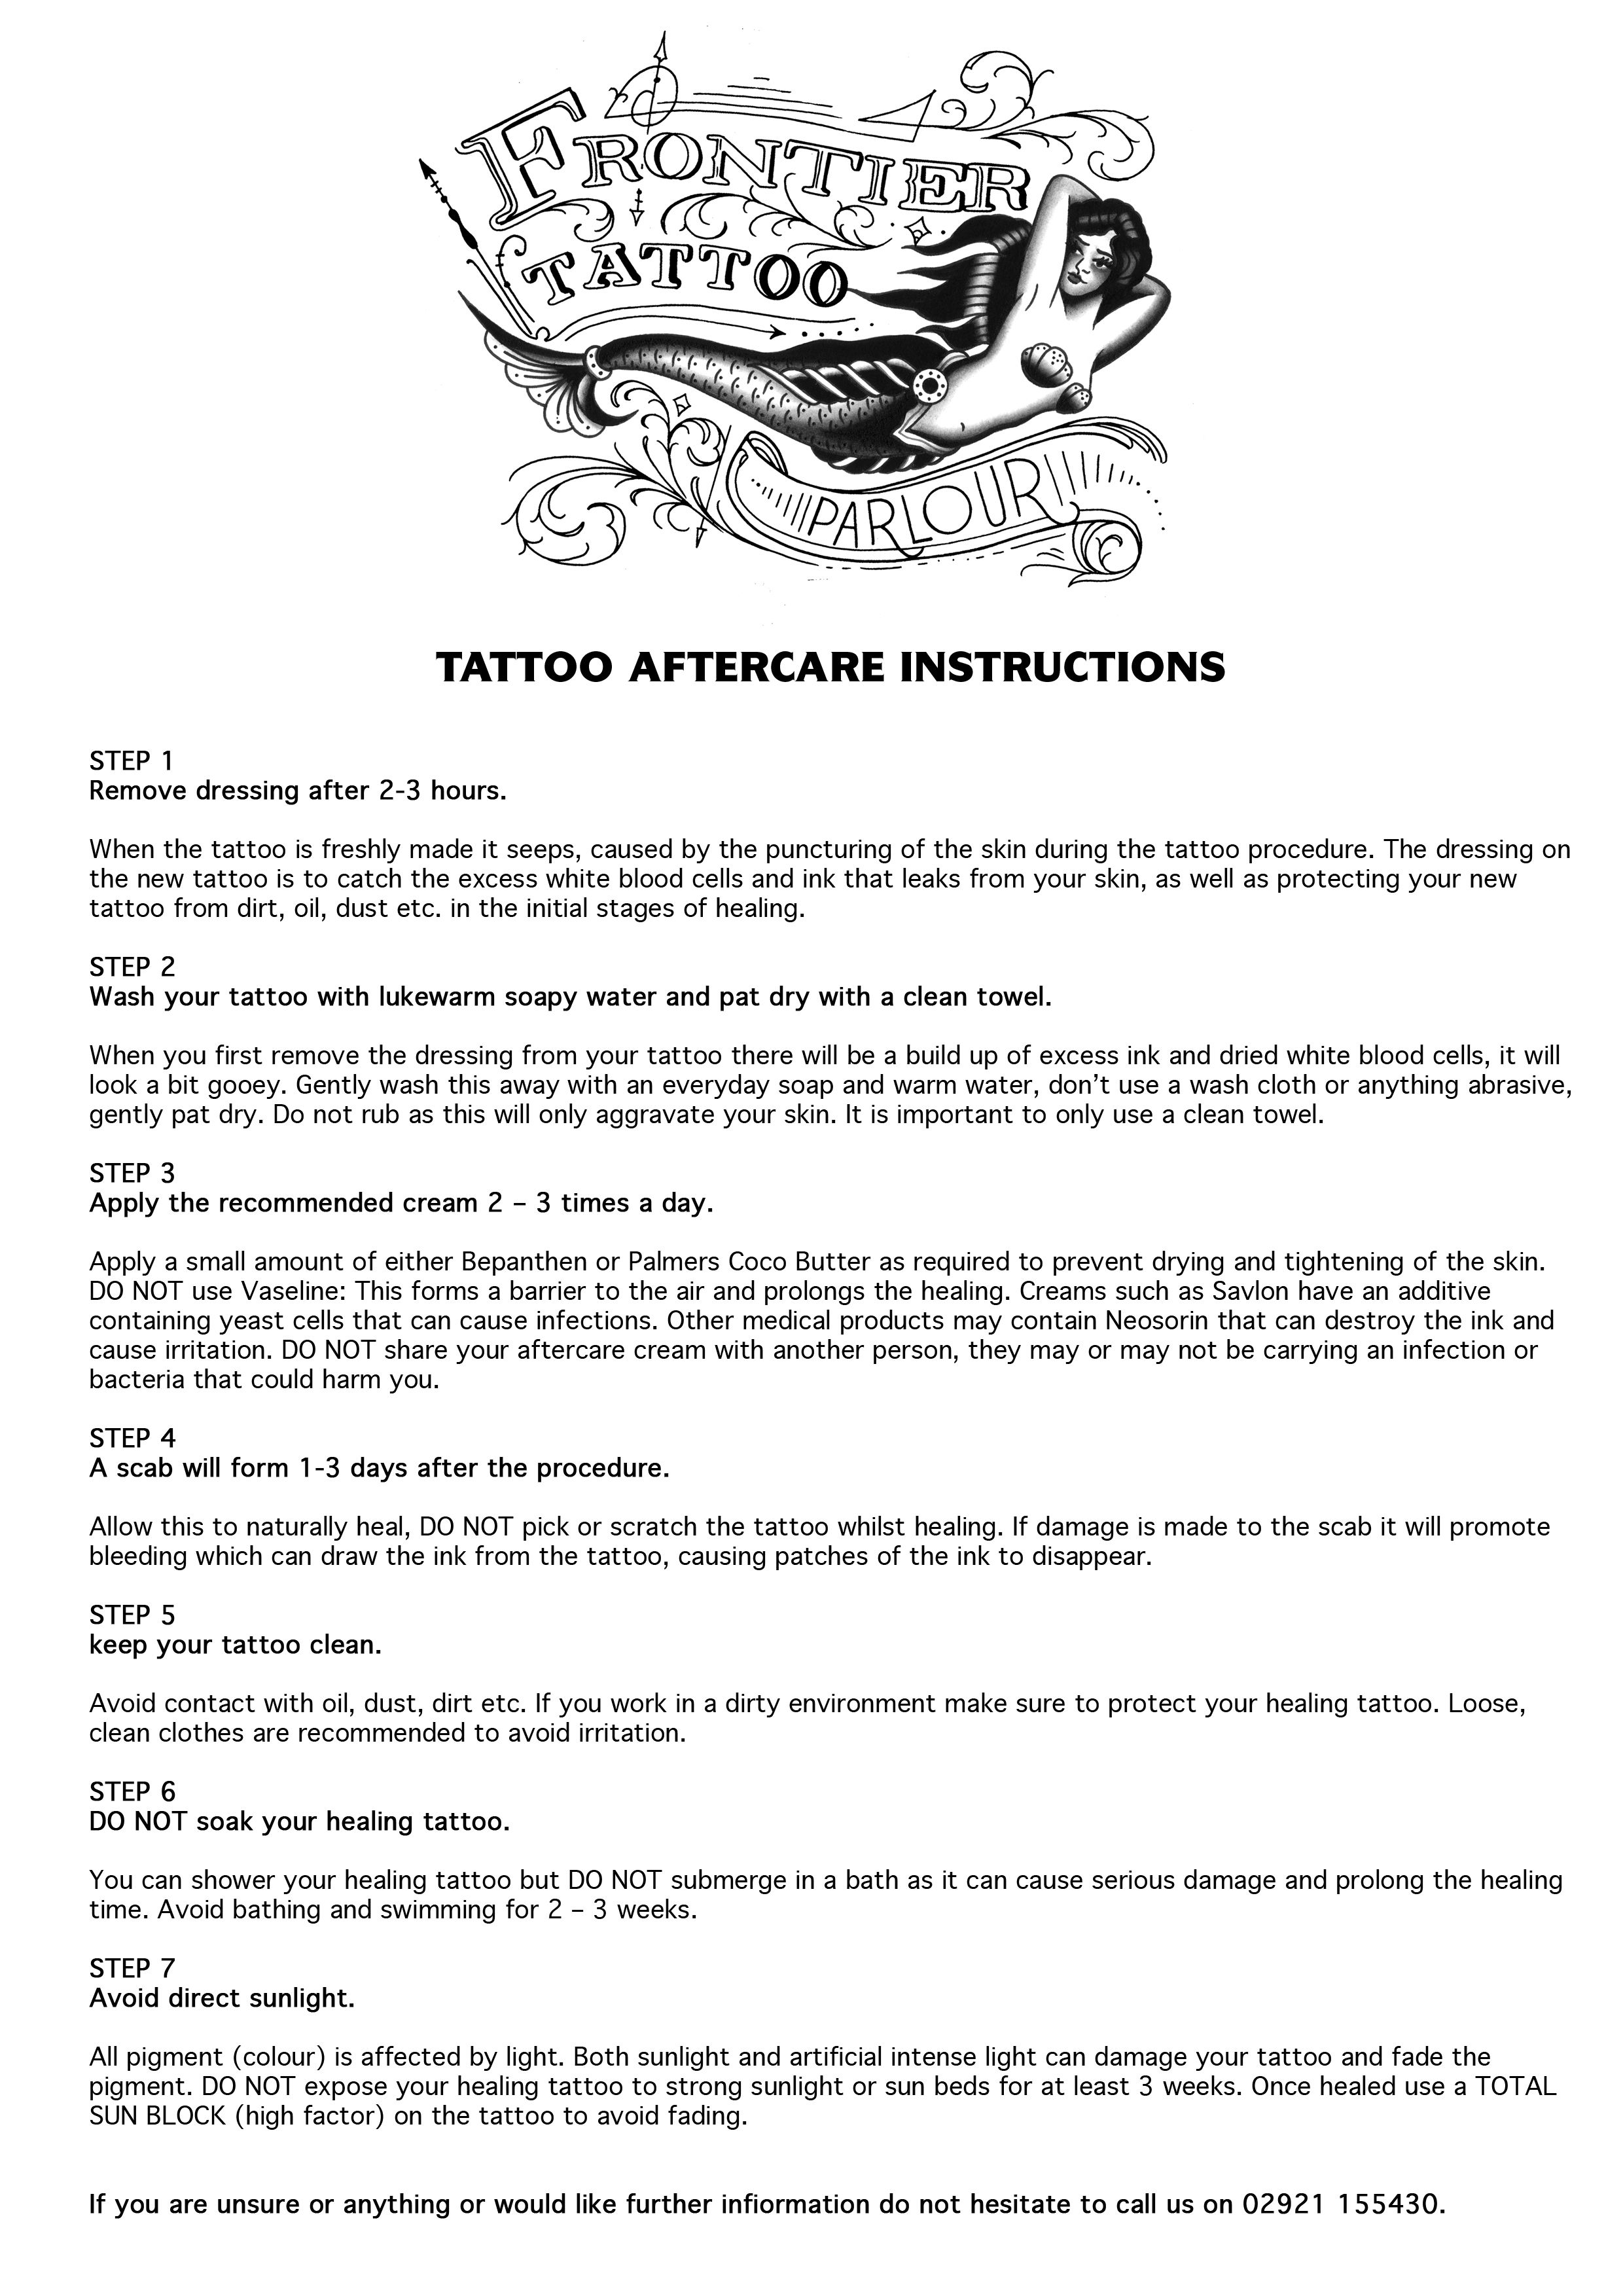 Tattoo Aftercare Frontier Tattoo Parlour Tattoos And Piercings